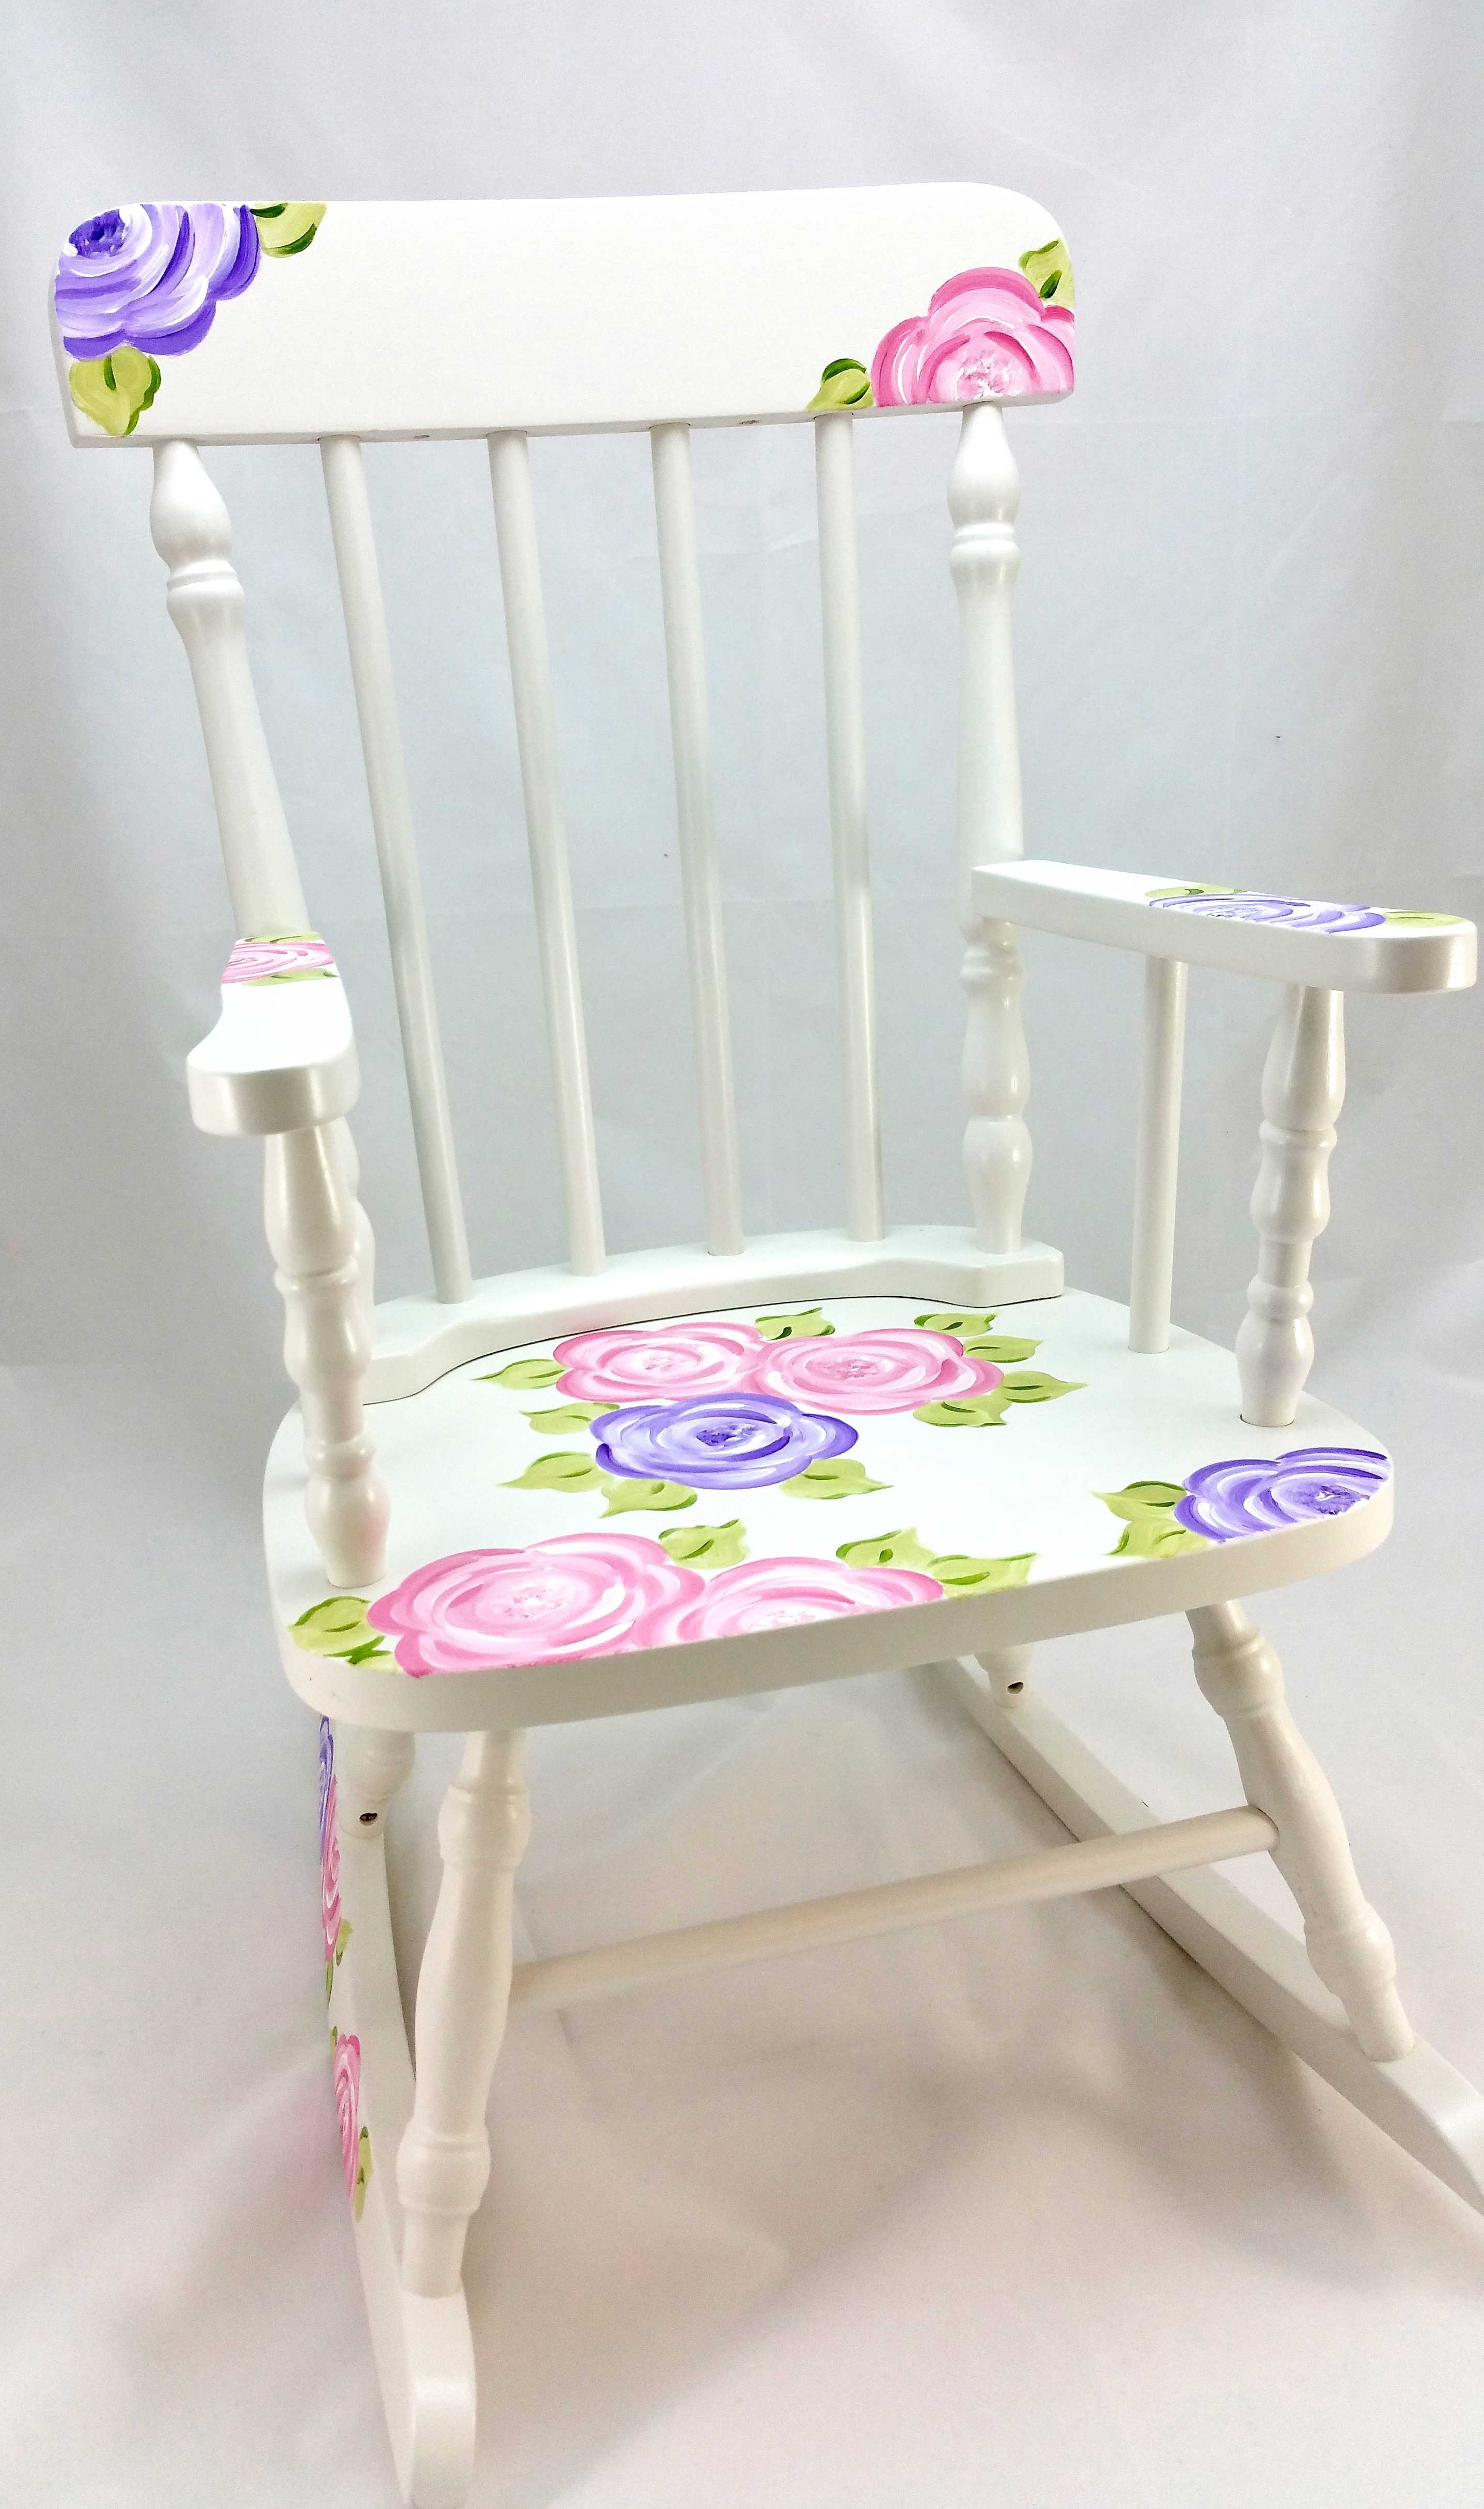 Most Popular Rocking Chairs At Roses Intended For Mod Roses Personalized Rocking Chair – Purple Pumpkin Gifts (View 4 of 15)